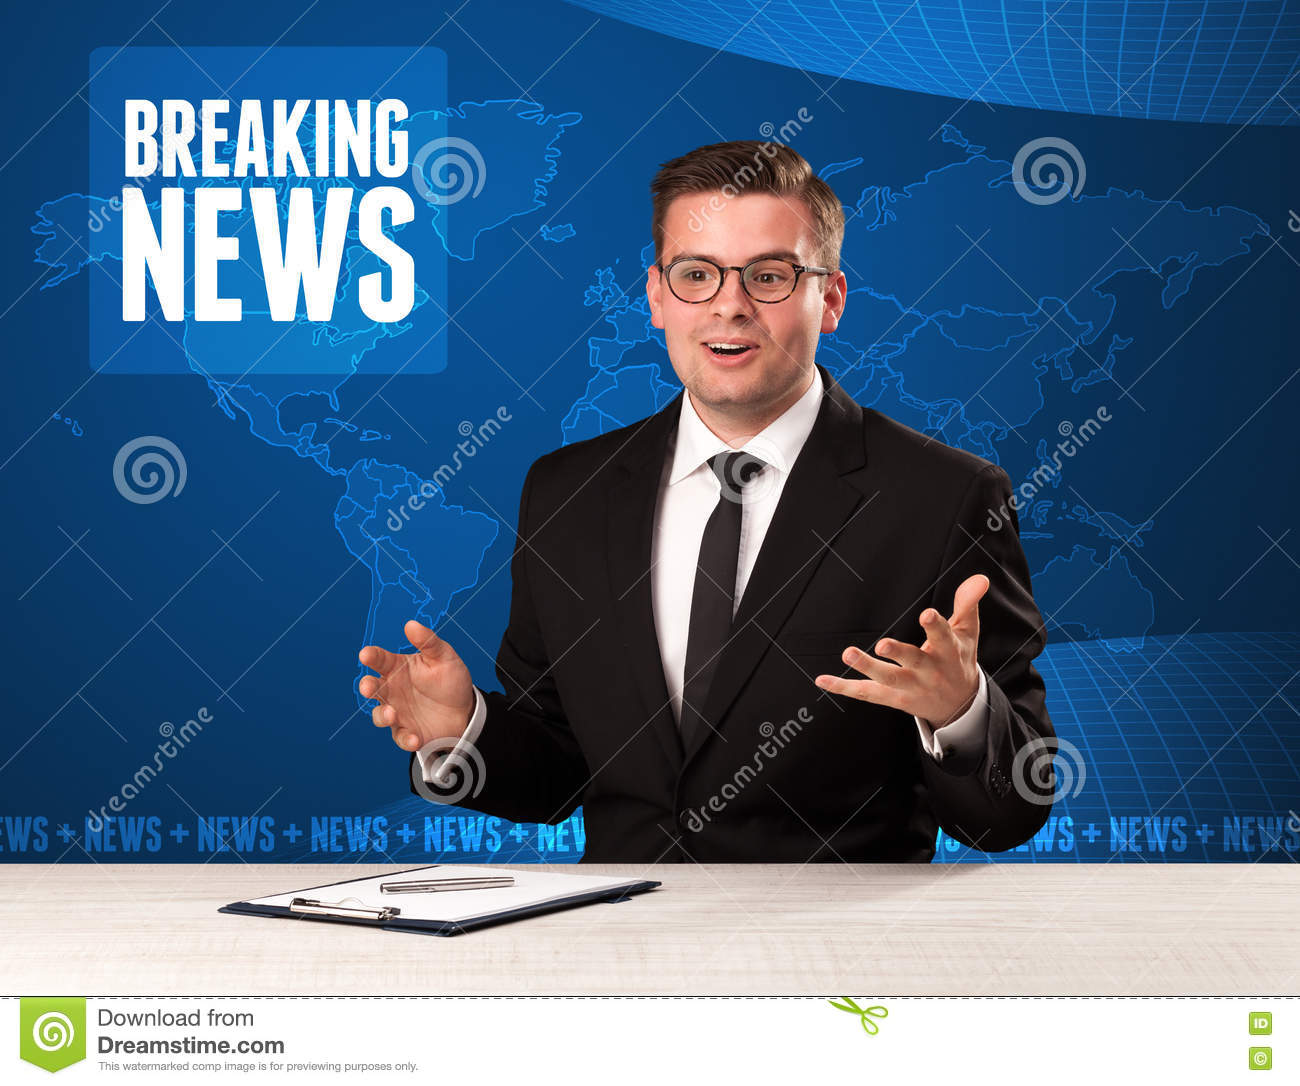 Breaking News: Television Presenter In Front Telling Breaking News With